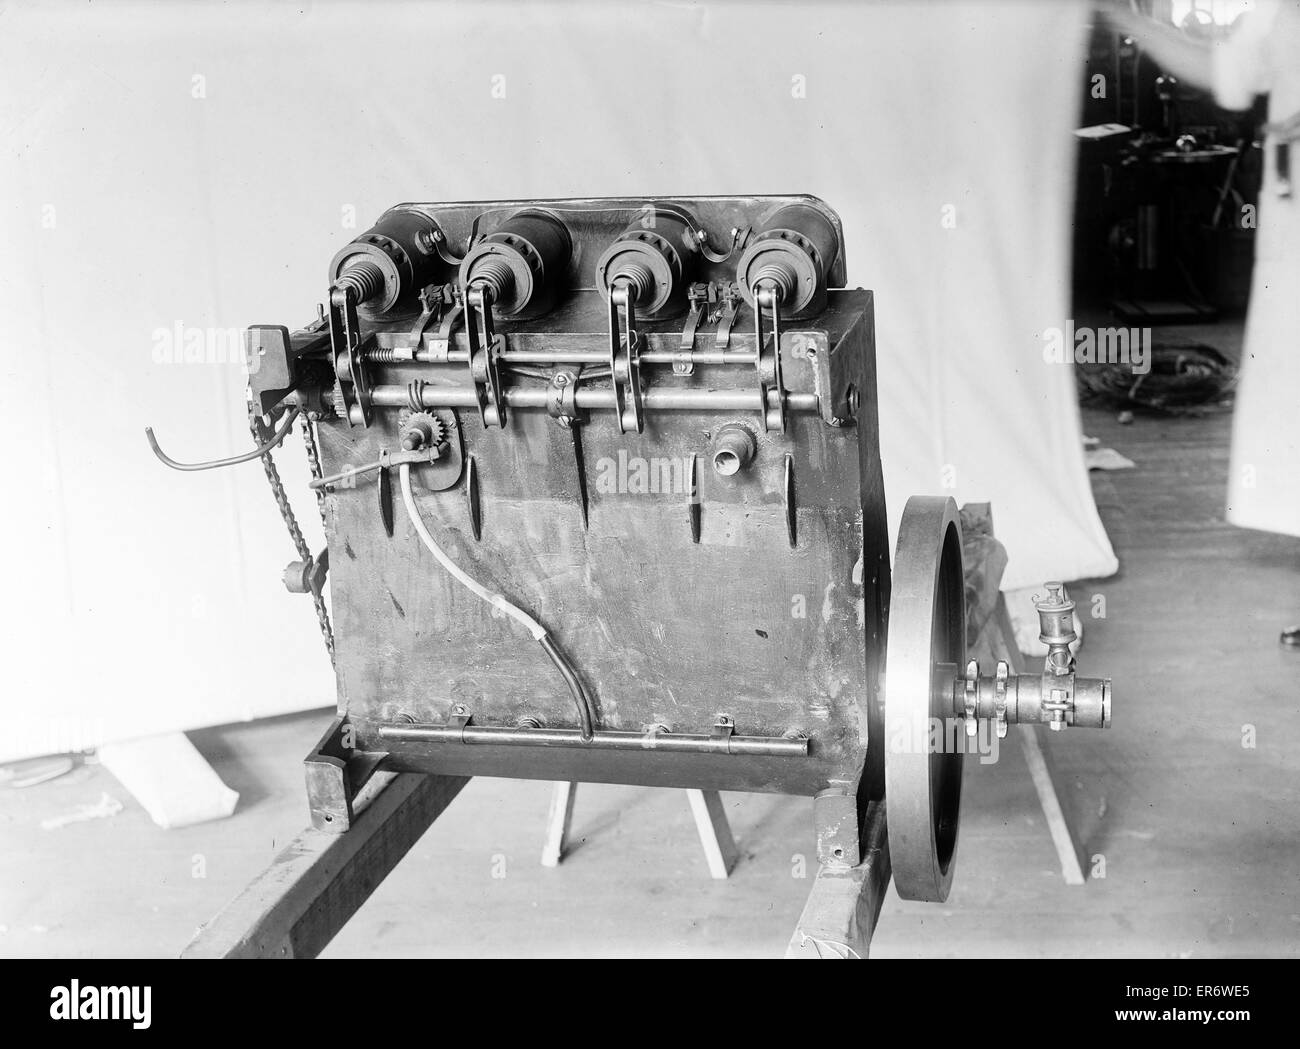 Underside view of the Wright brothers' reconstructed 1903 motor. Date 1928 Jan. 10. - Stock Image